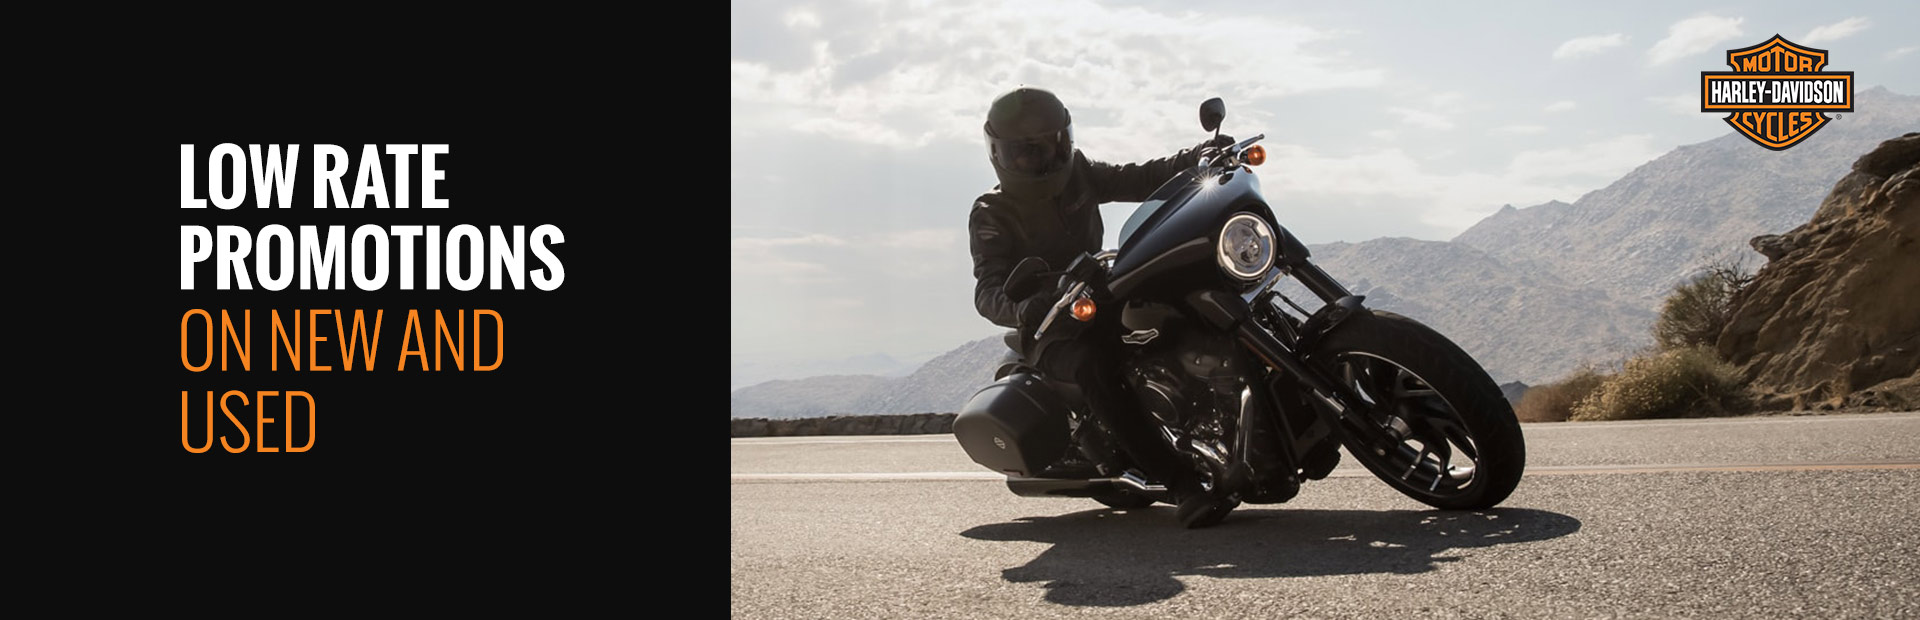 Shop New & Used Harley Davidson Motorcycles, MotorClothes ...